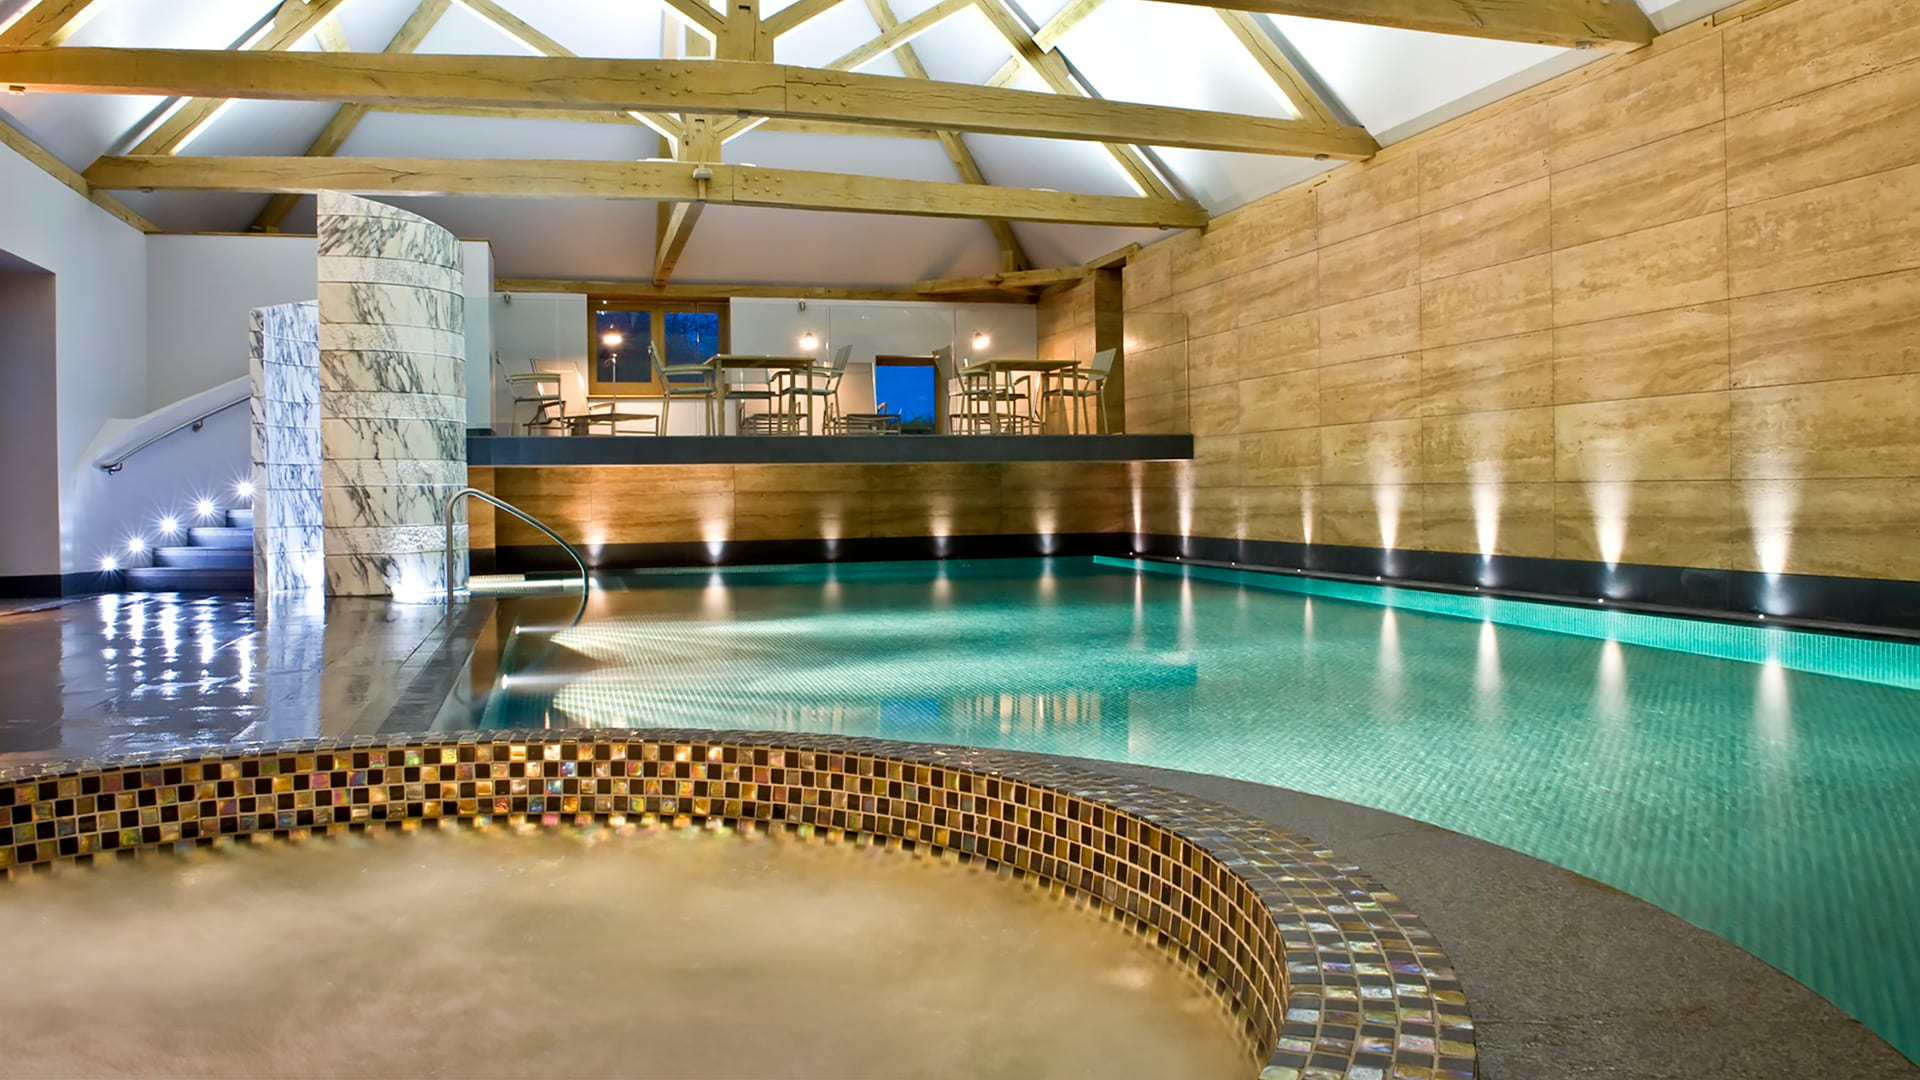 Luxury Hotels With Swimming Pools